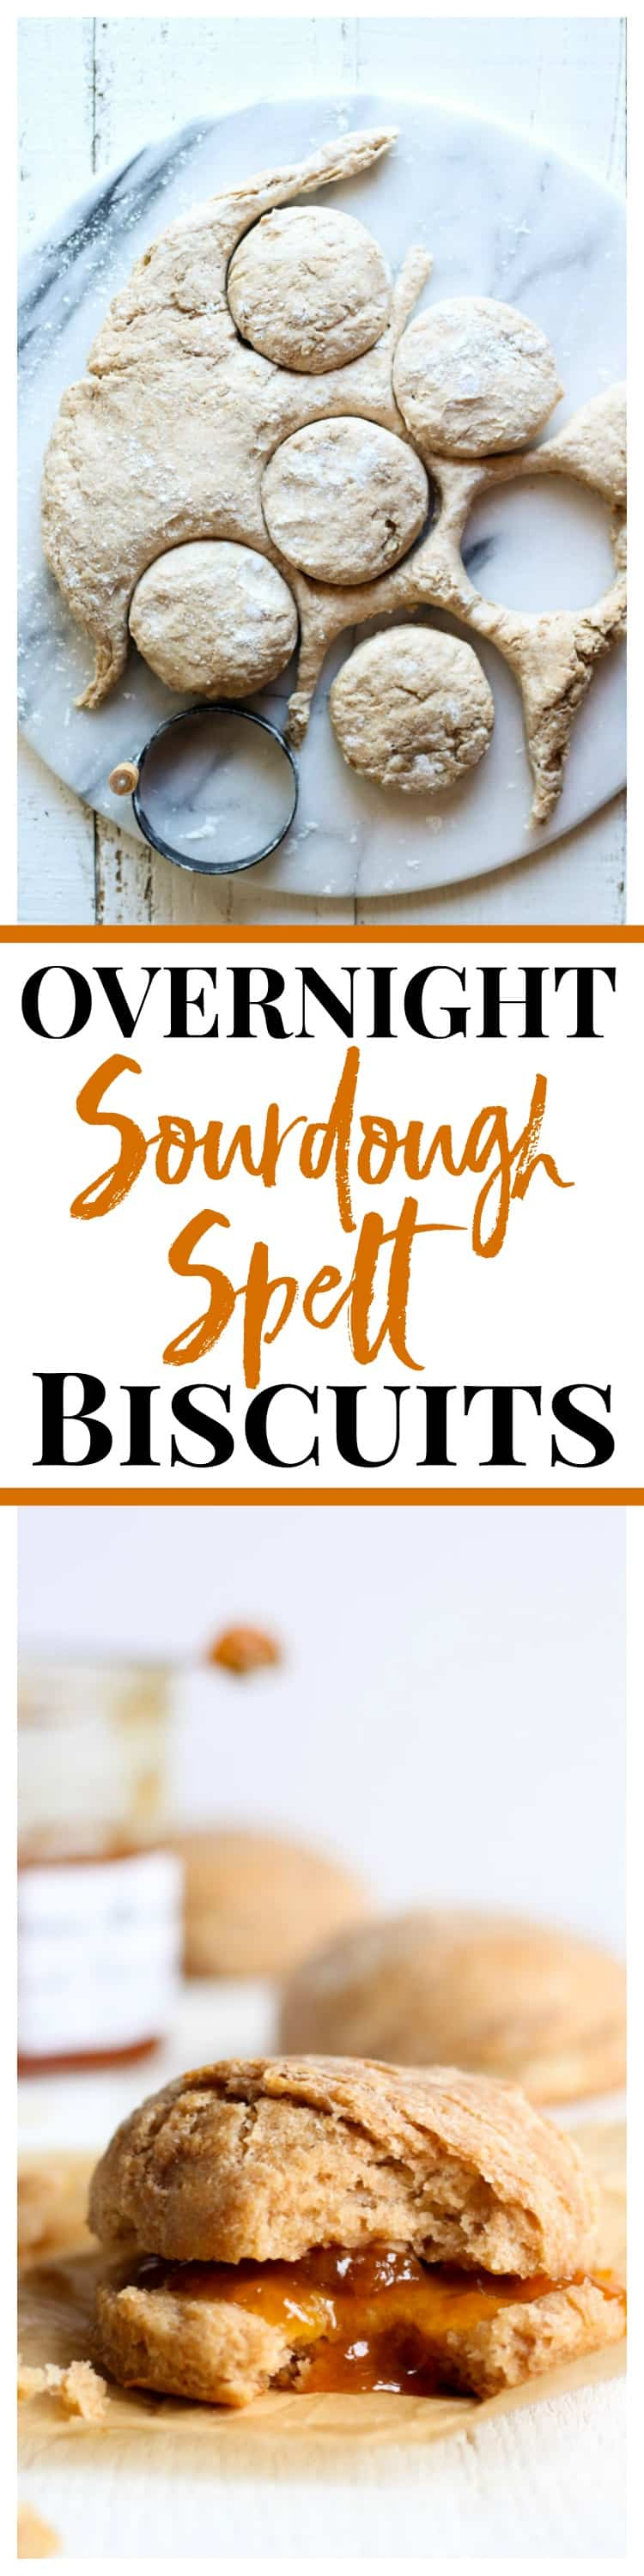 These overnight sourdough spelt biscuits are tender, buttery, and delicious!